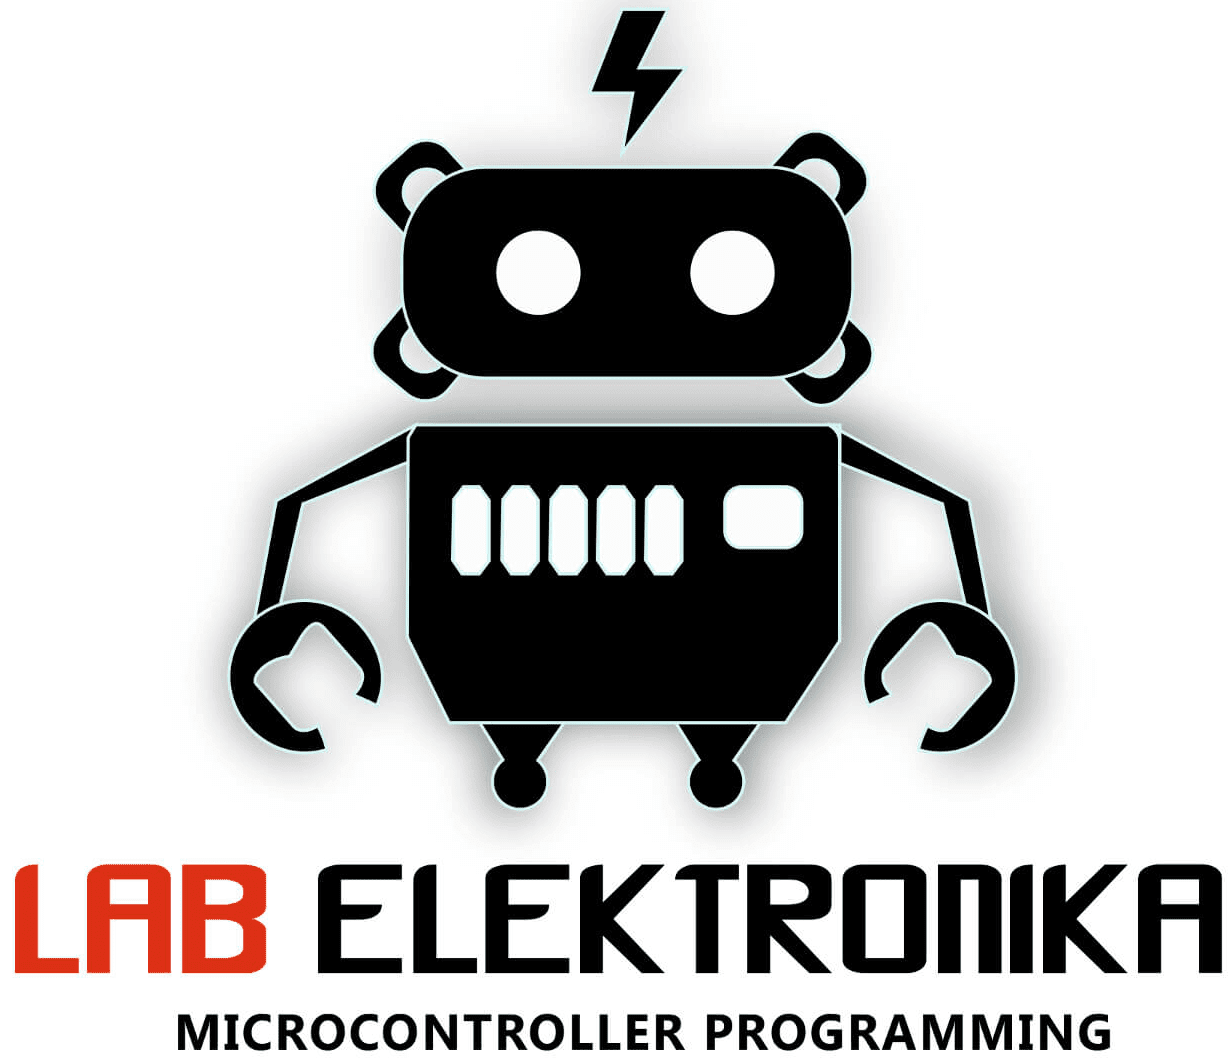 LAB ELEKTRONIKA